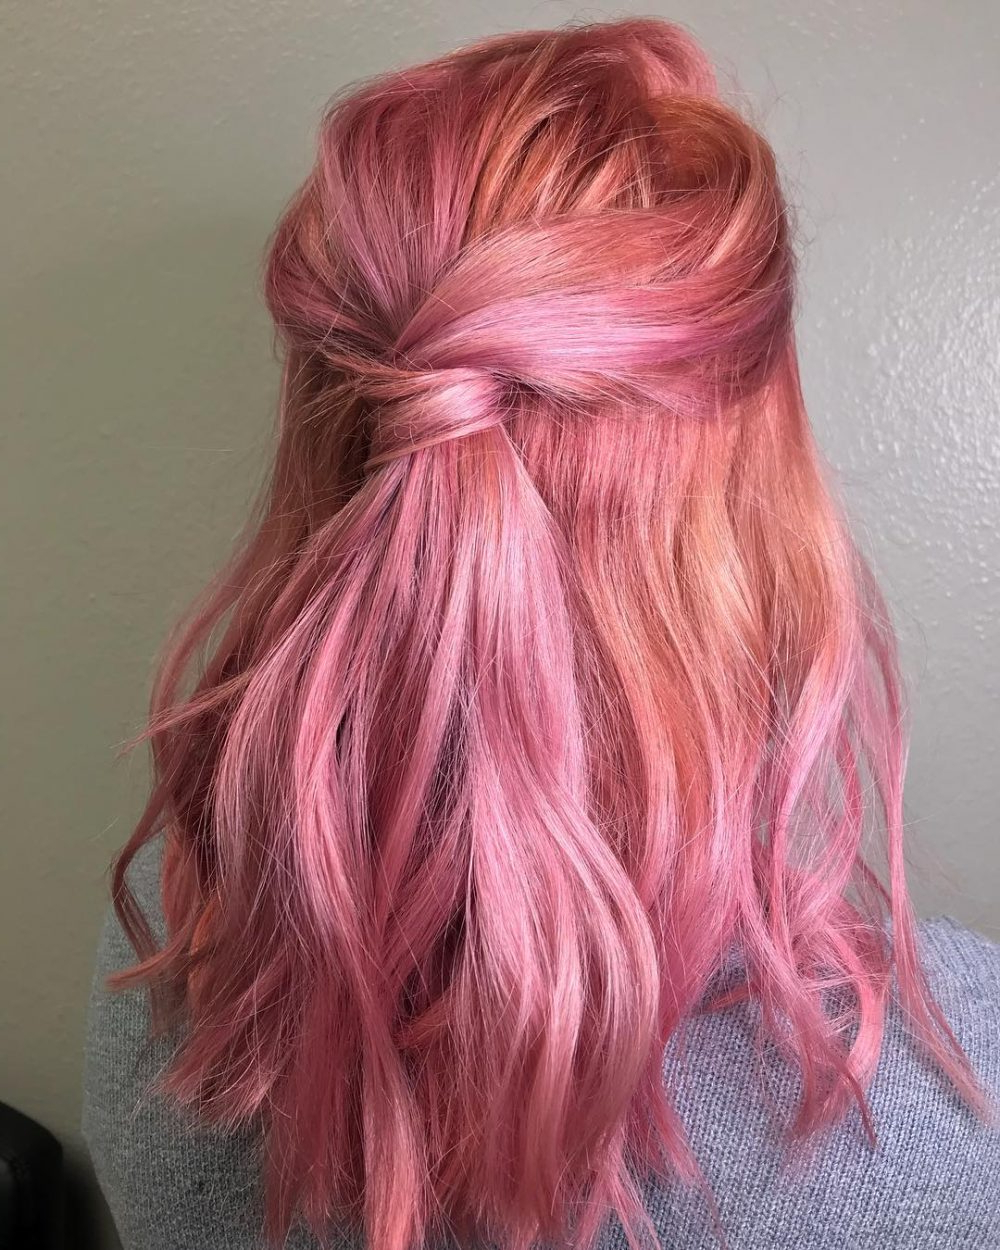 Preferred Pinks Medium Haircuts Intended For 28 Cute Hairstyles For Medium Length Hair (popular For 2019) (View 3 of 20)